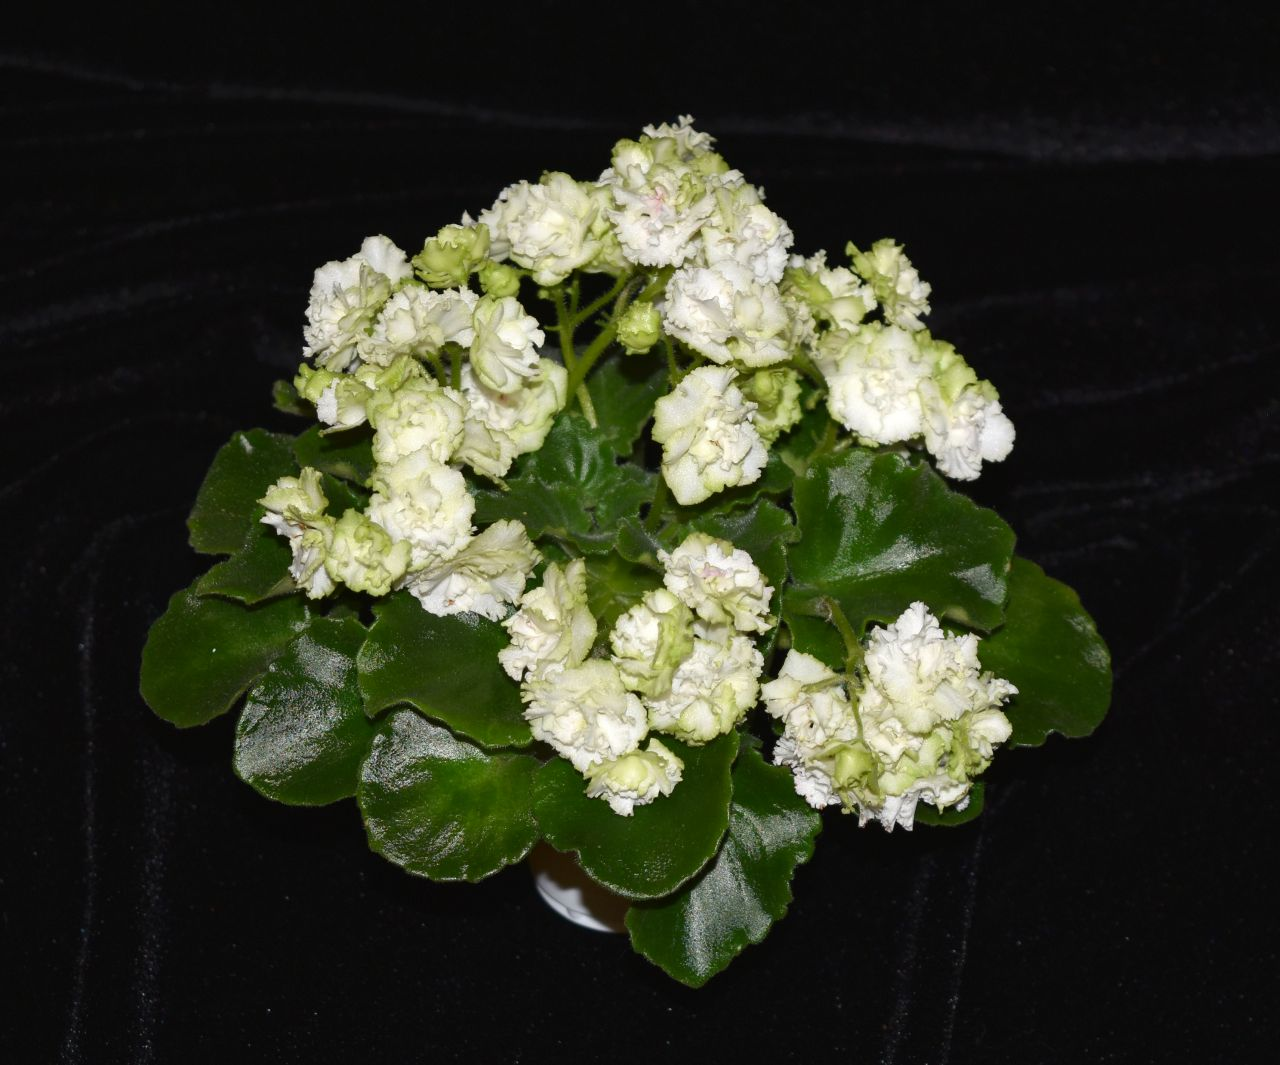 """2017 Convention<br>Old World African Gesneriads in Flower <br>Class 22A – <i>Saintpaulia</i> hybrids or cultivars classified as semi-miniatures (max of 8"""" diameter)<br>BEST SAINTPAULIA HYBRID"""